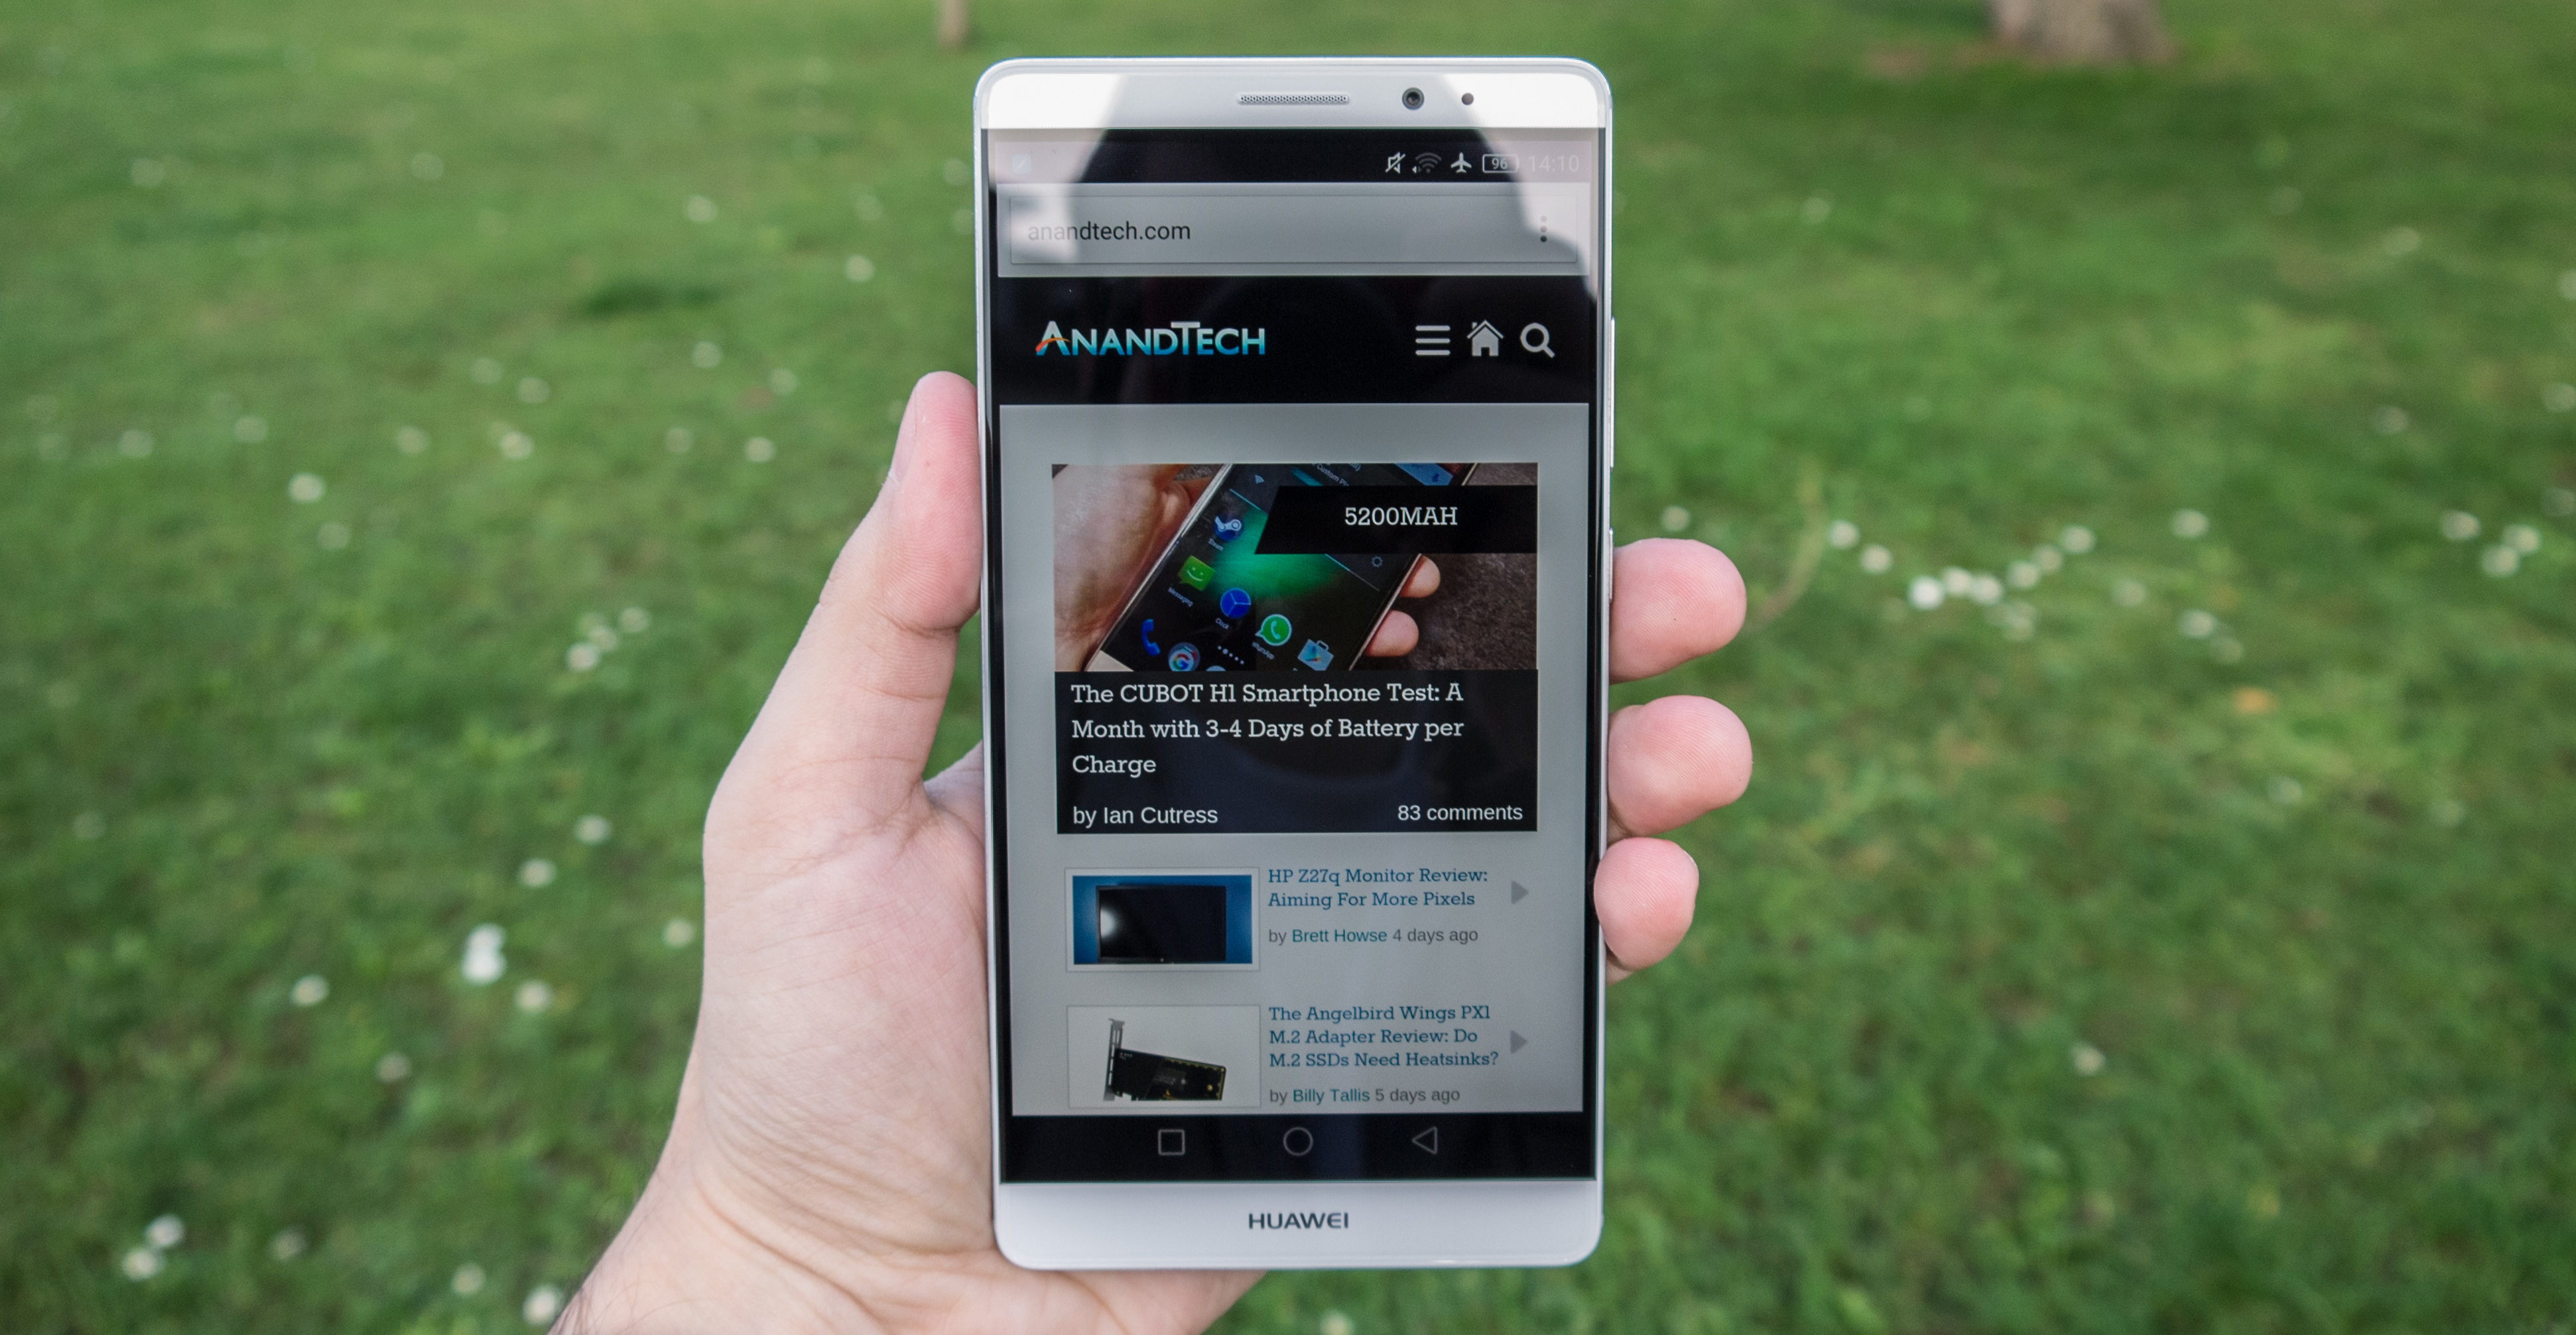 The Huawei Mate 8 Review